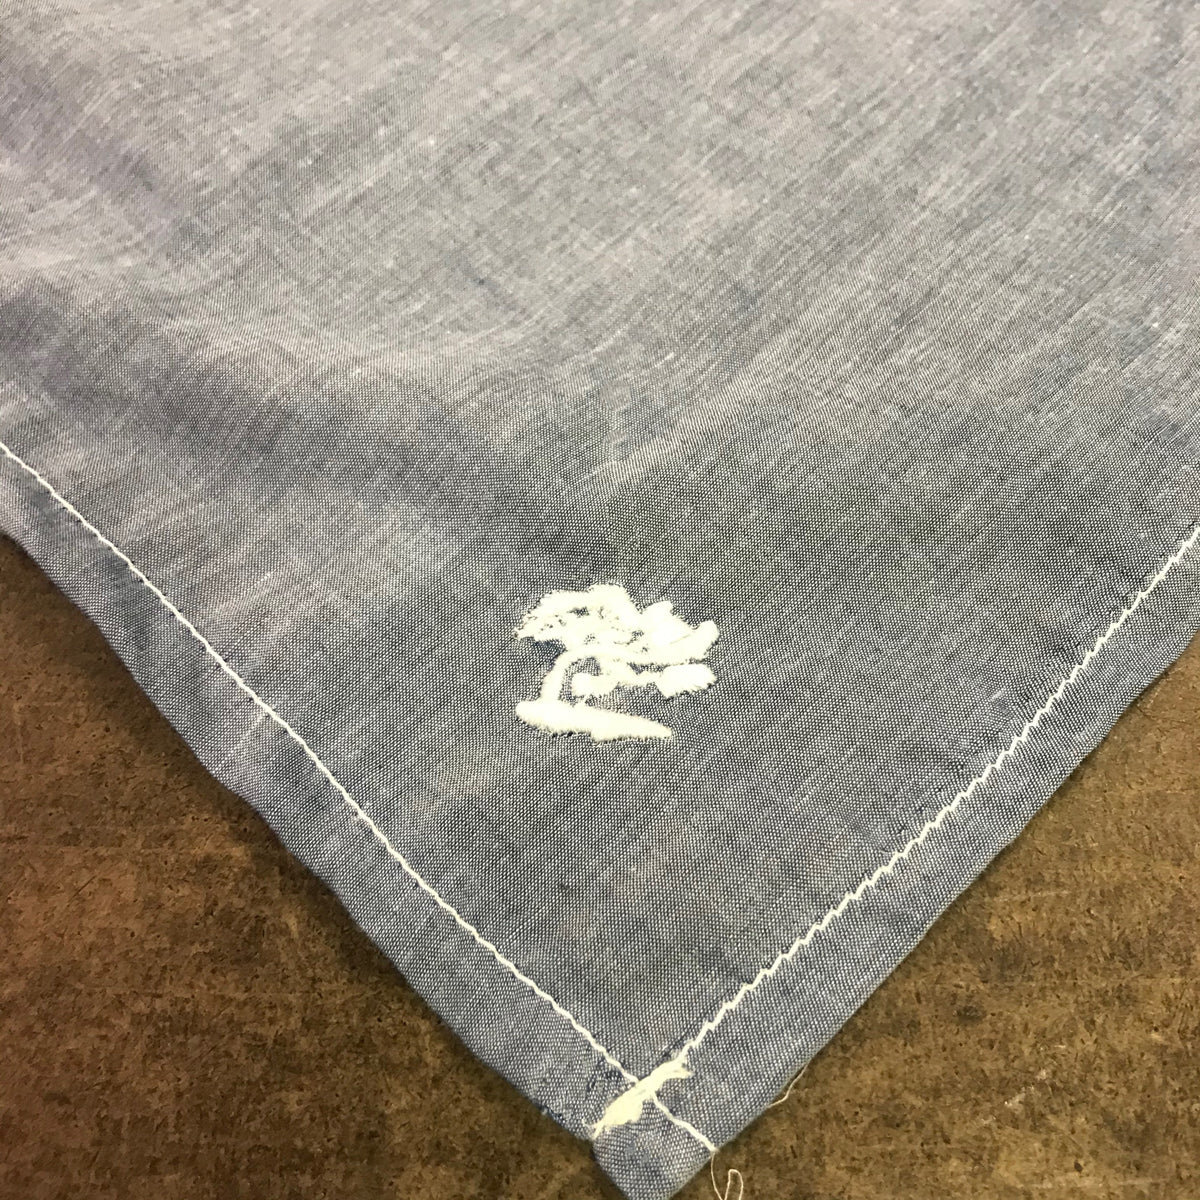 100% Cotton Handkerchief Chambray Large 27.5 x 27.5 Embroidery